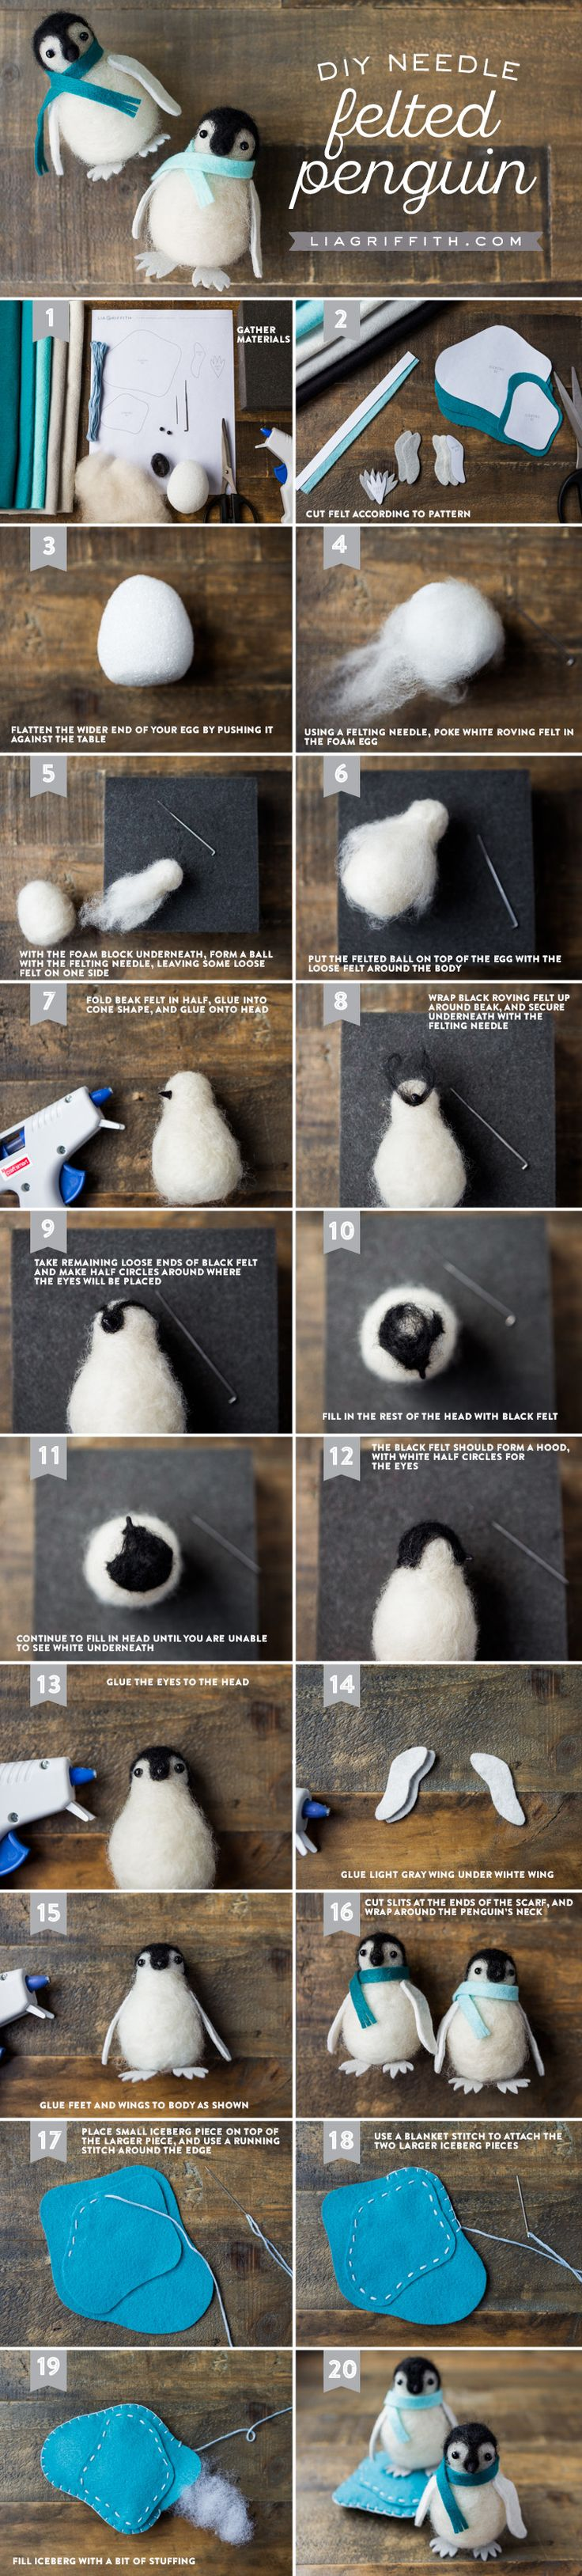 Learn a neat trick for felting and make yourself a cute needle felted penguin in the process! Design, pattern and tutorial by Lia Griffith.